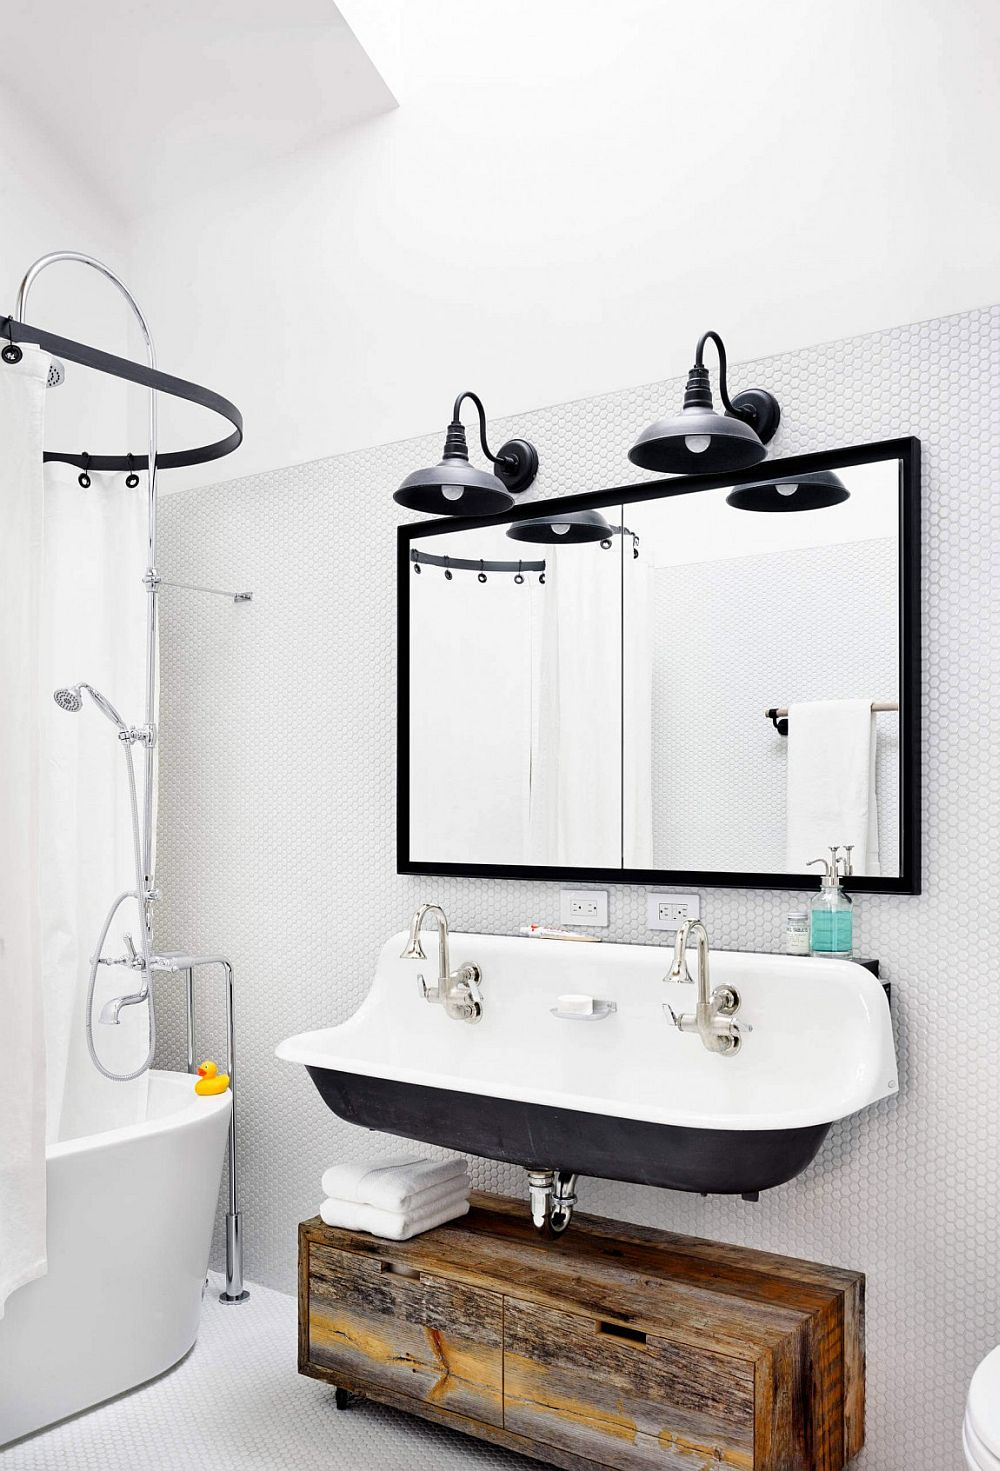 Penny tiles and vintage sink for the modern bathroom